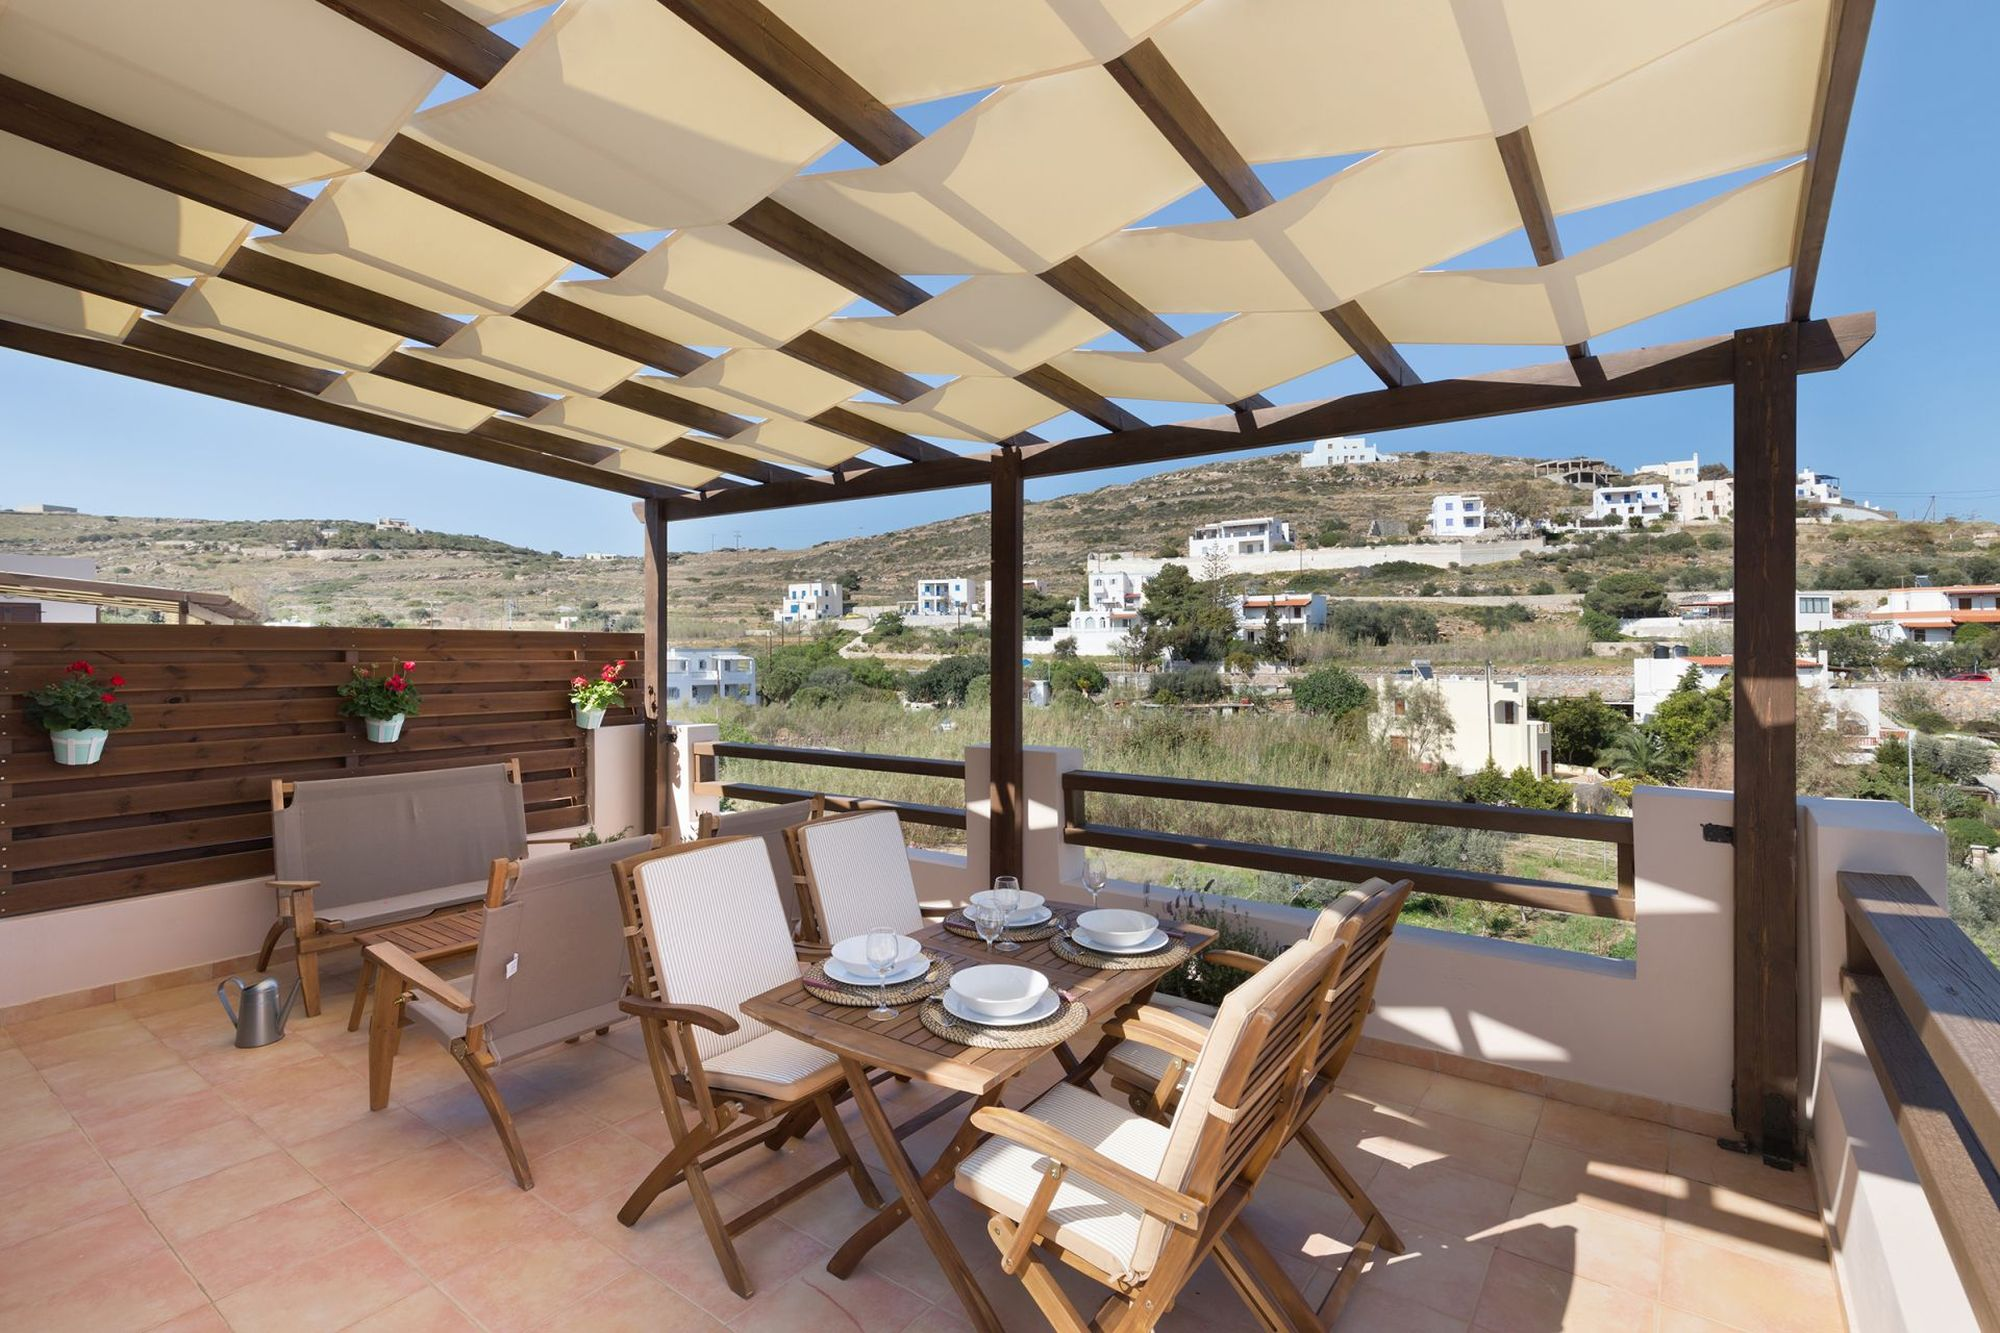 Veranda with pergola furnished with lounge and dining table with four chairs.